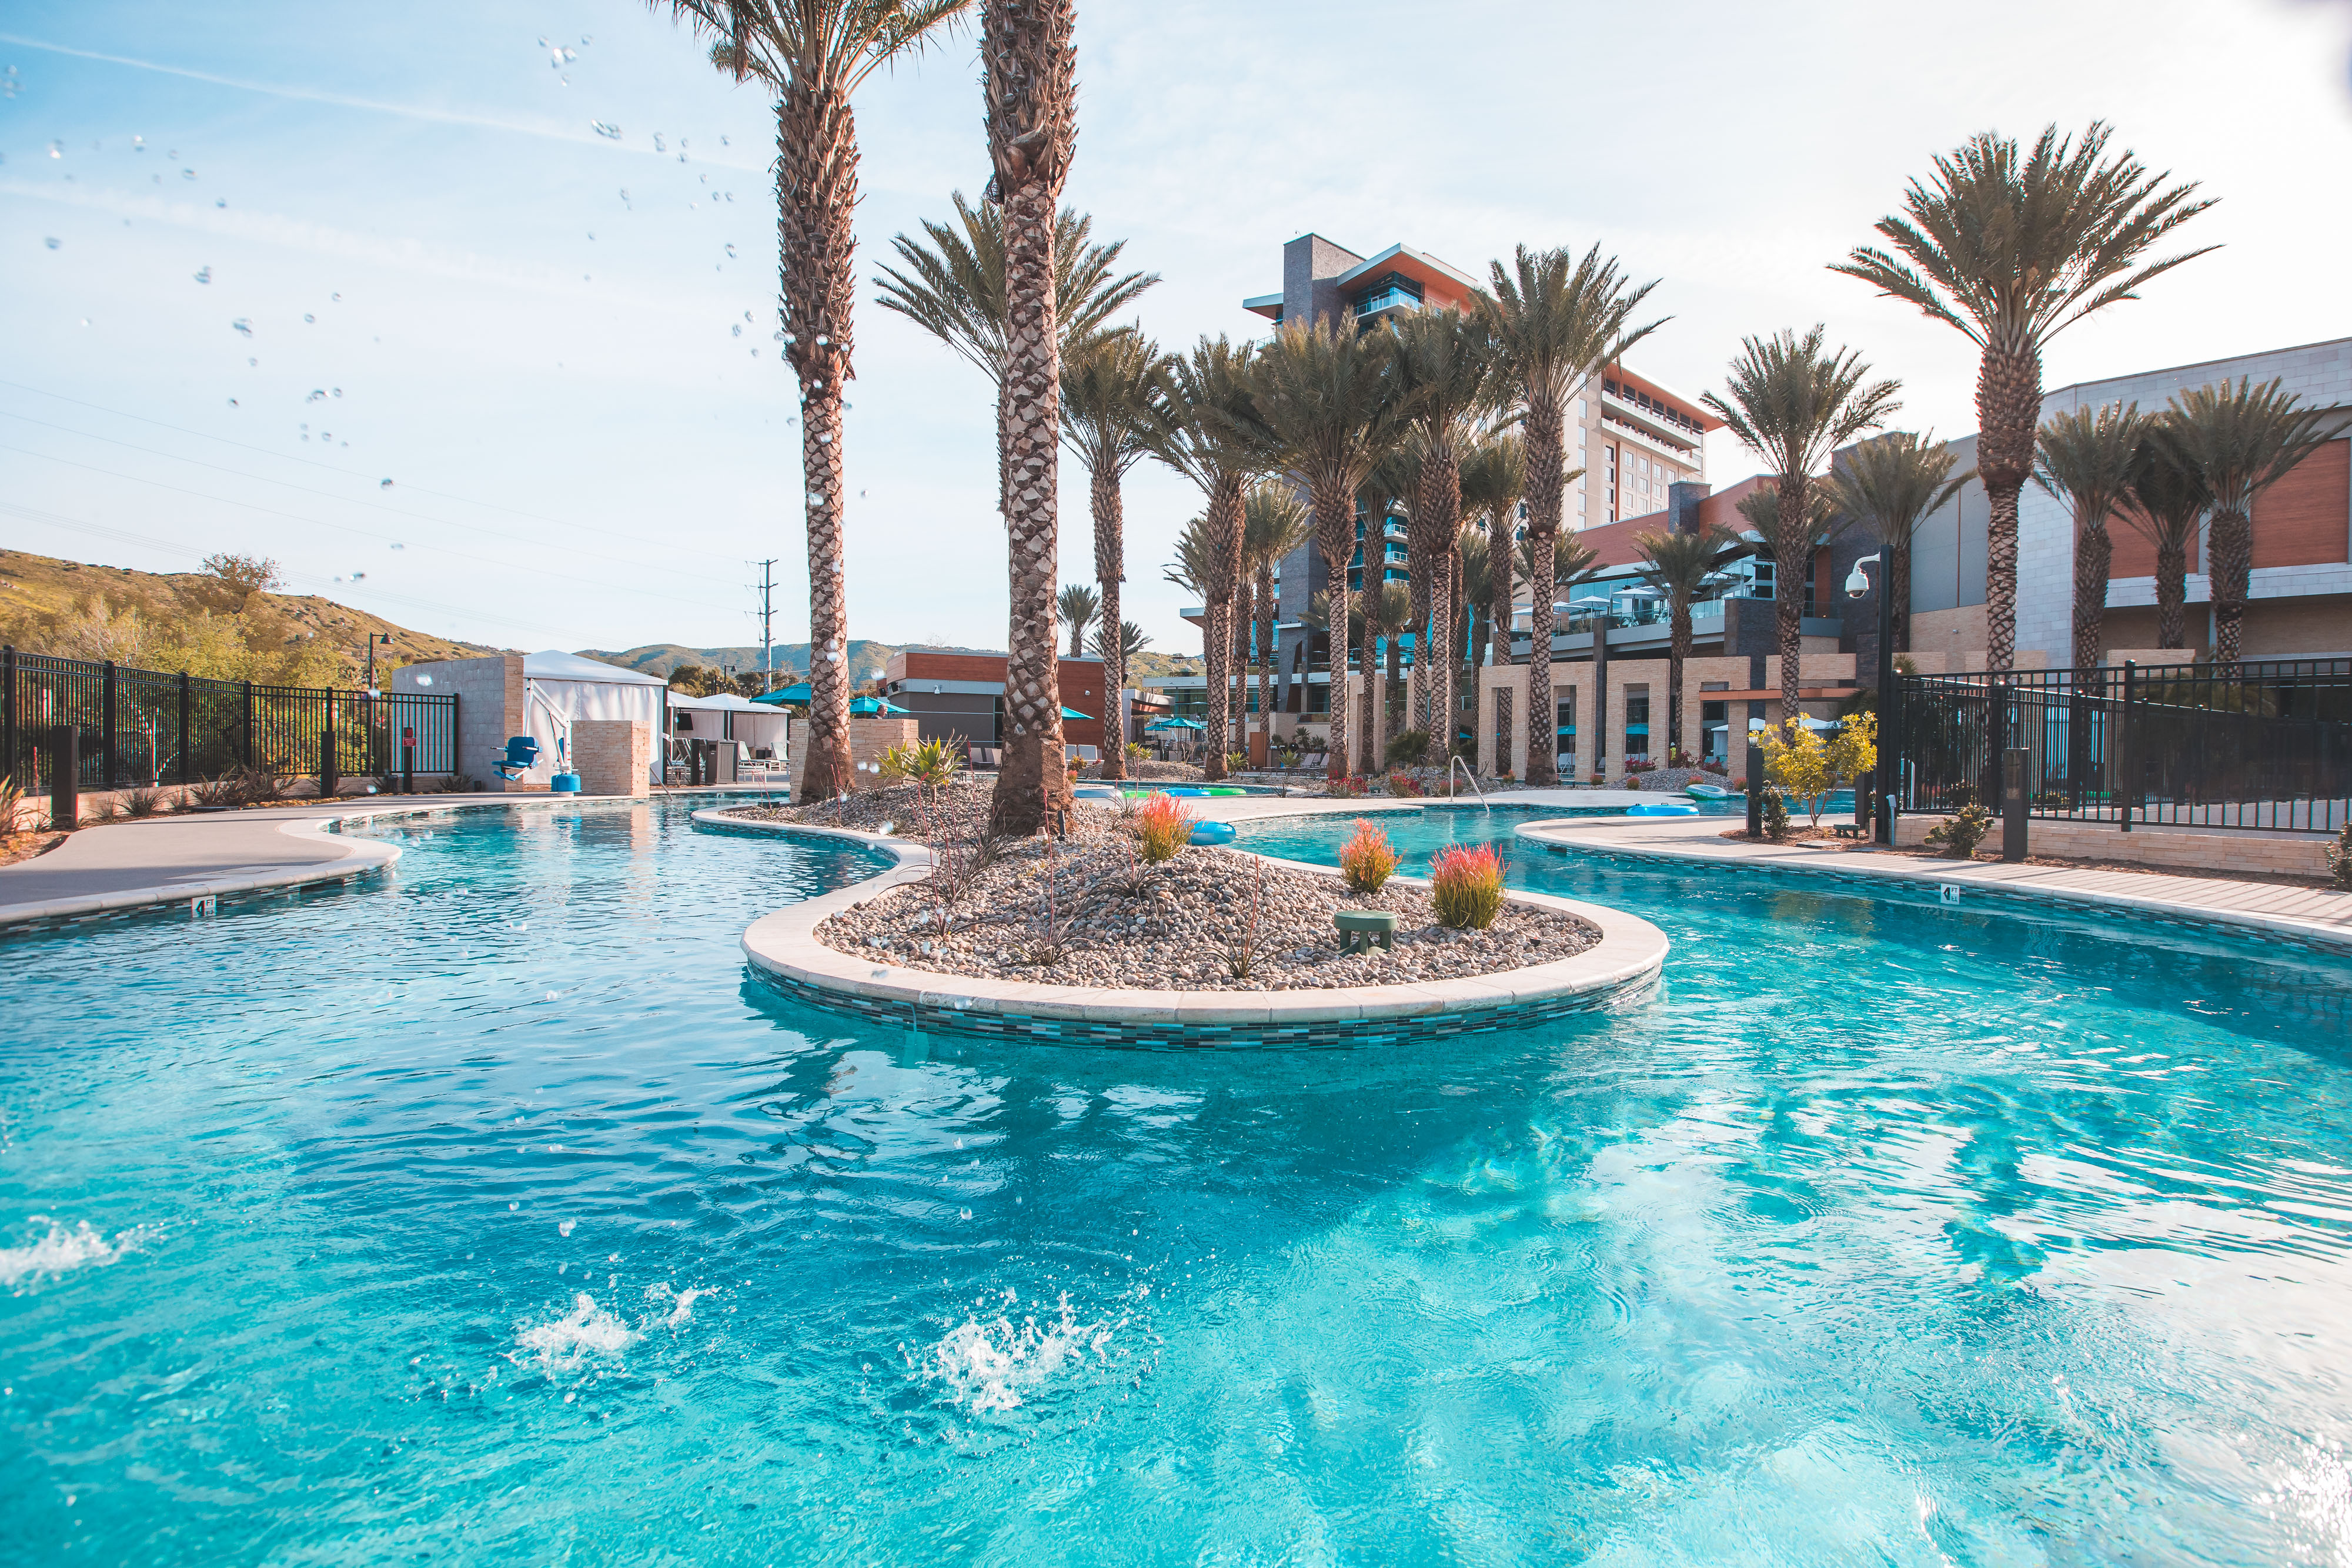 Take A Dip At Your New Summer Playground – Dip Day Club, San Diego